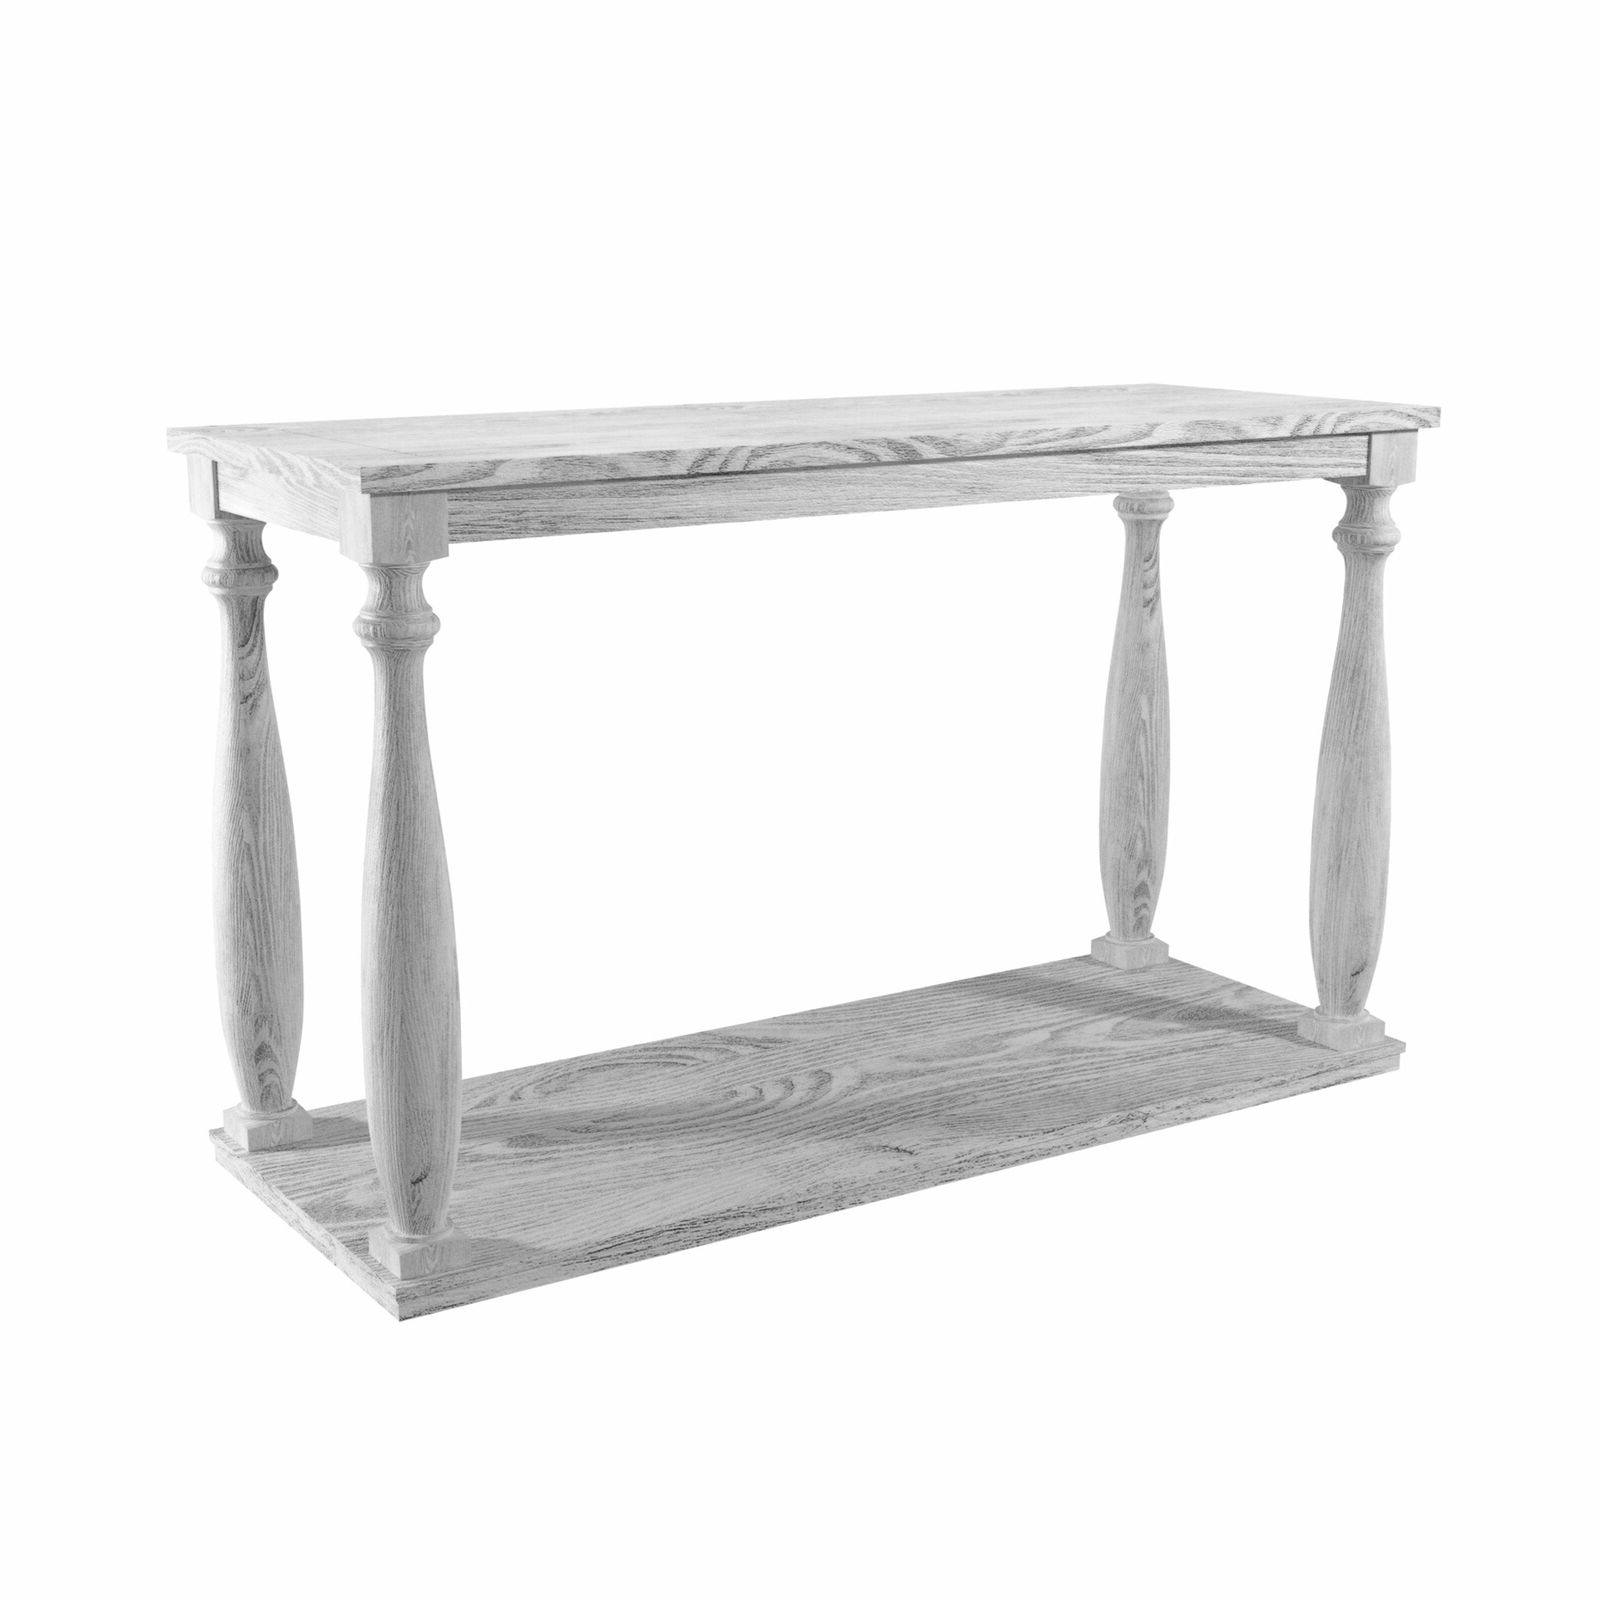 Bethany Traditional Antique White Sofa Tablefoa Antique White N/a In Well Known Cohler Traditional Brown Cherry Oval Coffee Tables (View 15 of 20)